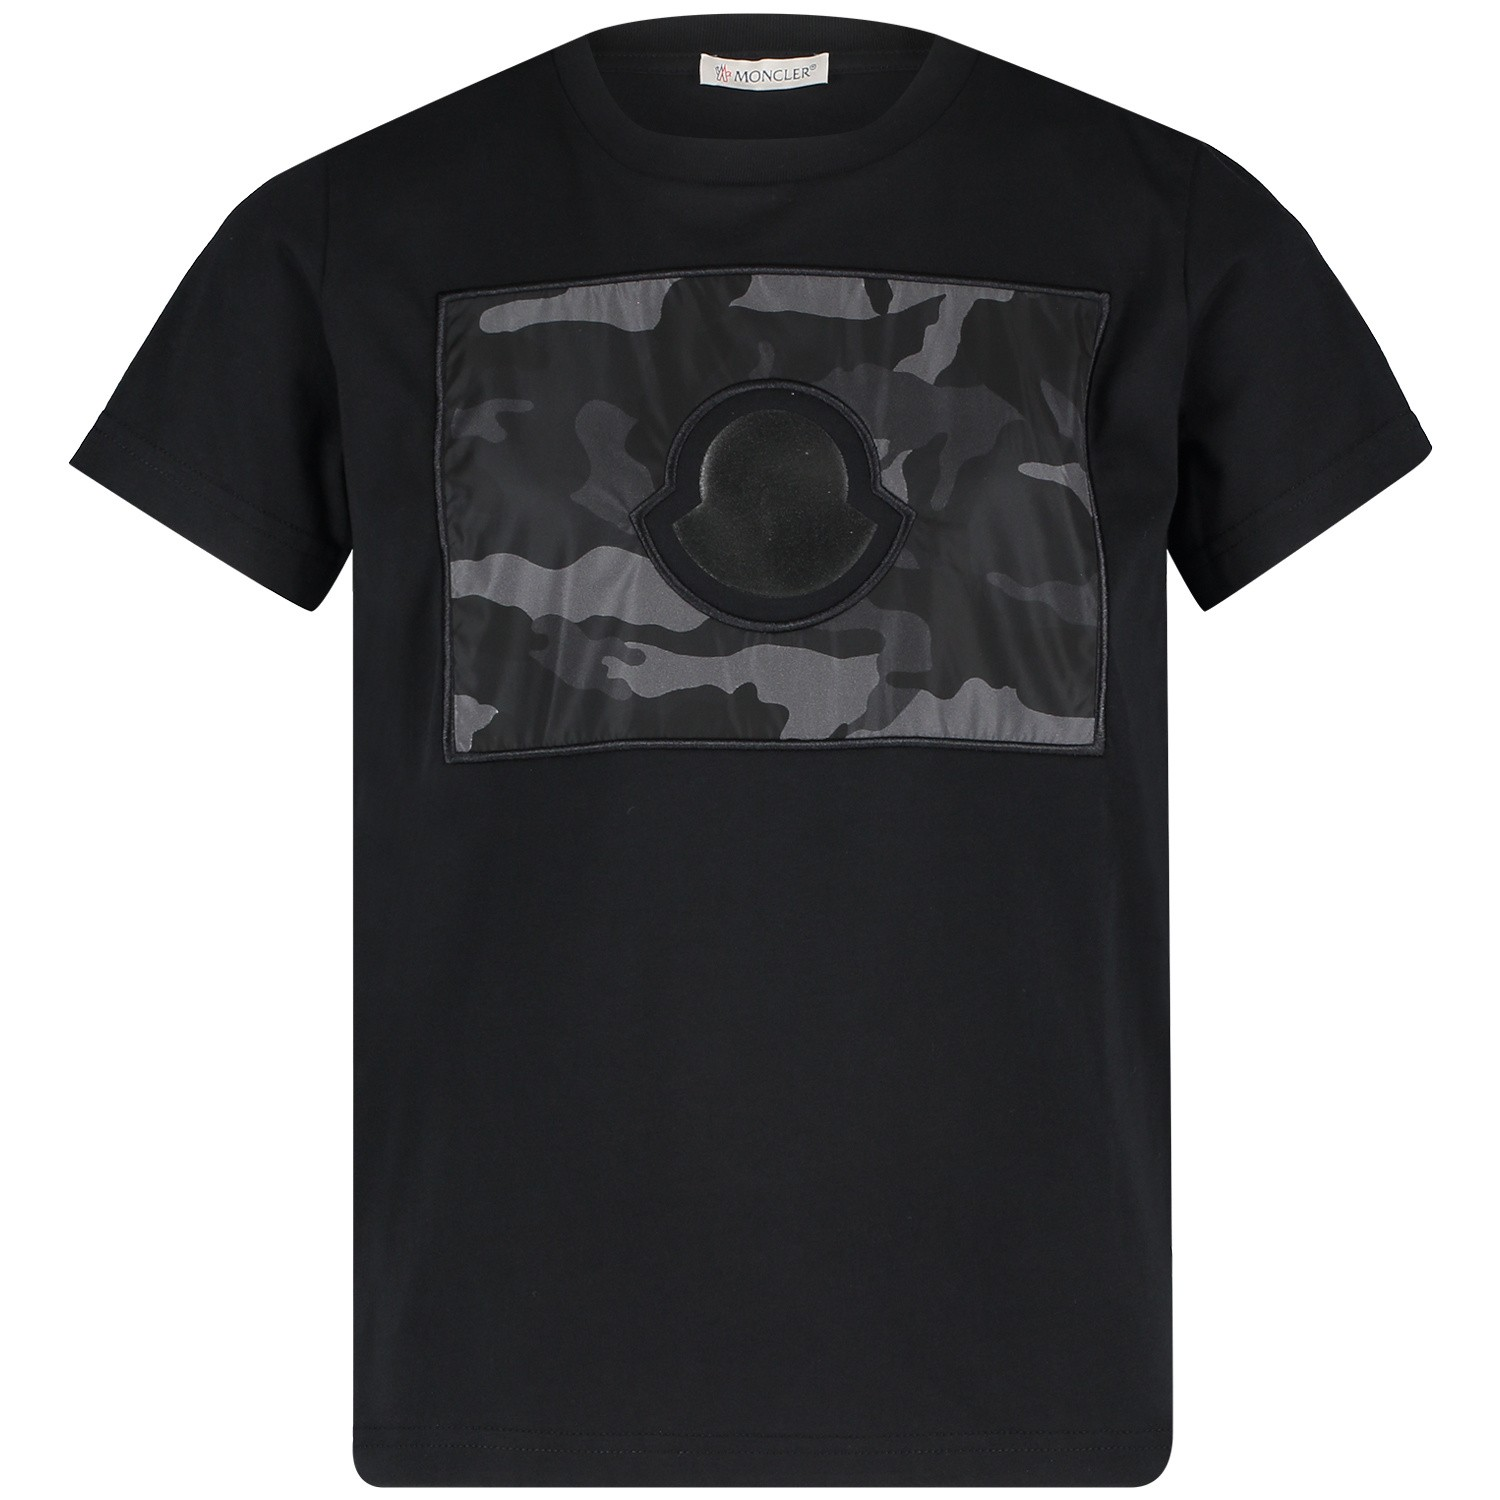 Picture of Moncler 8025050 kids t-shirt black